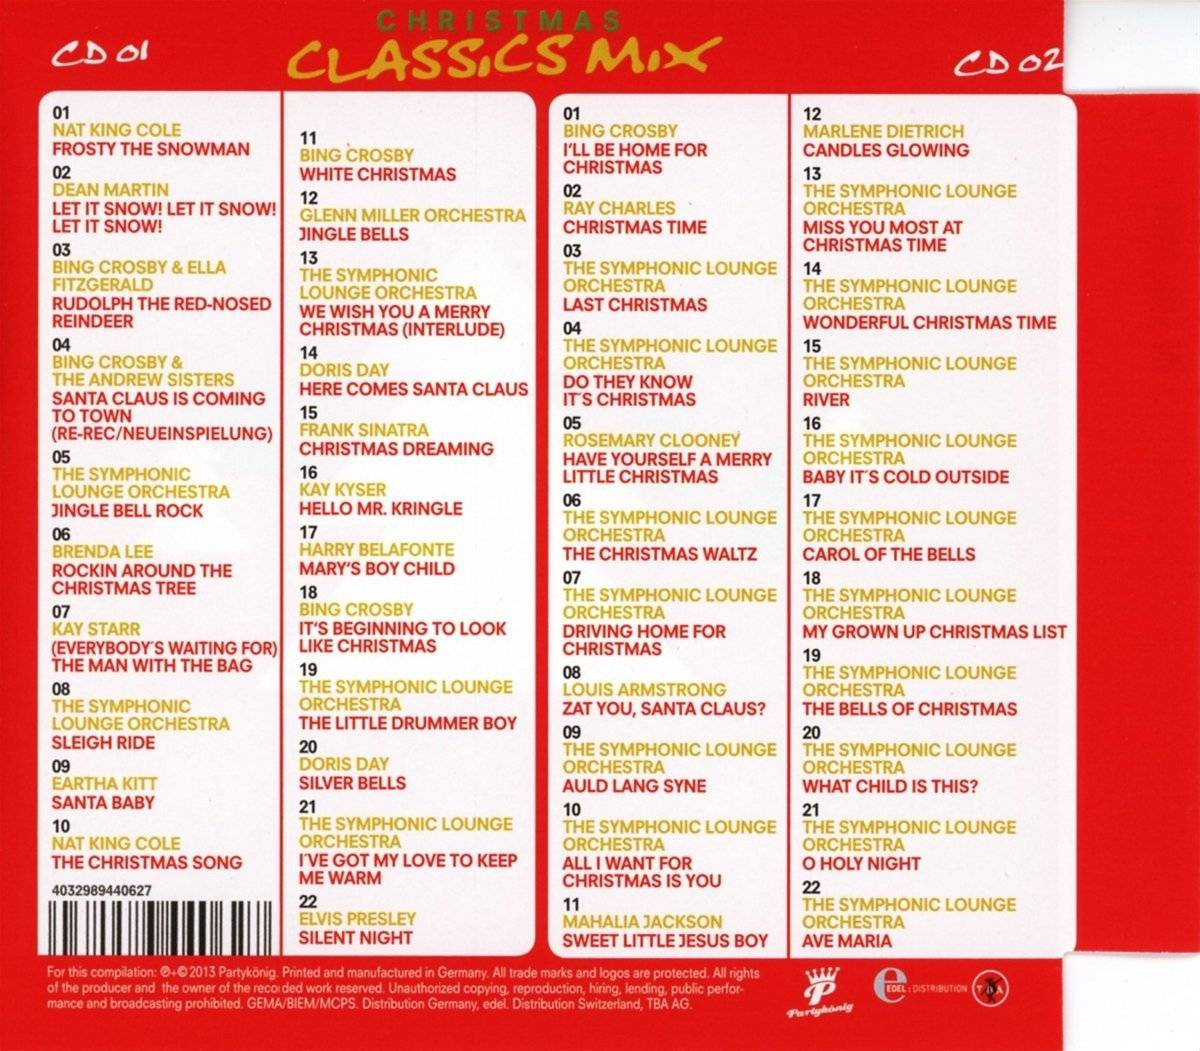 Nat King Cole Weihnachtslieder.Christmas Classics Mix 2 Cd 2013 Super Jewel Case